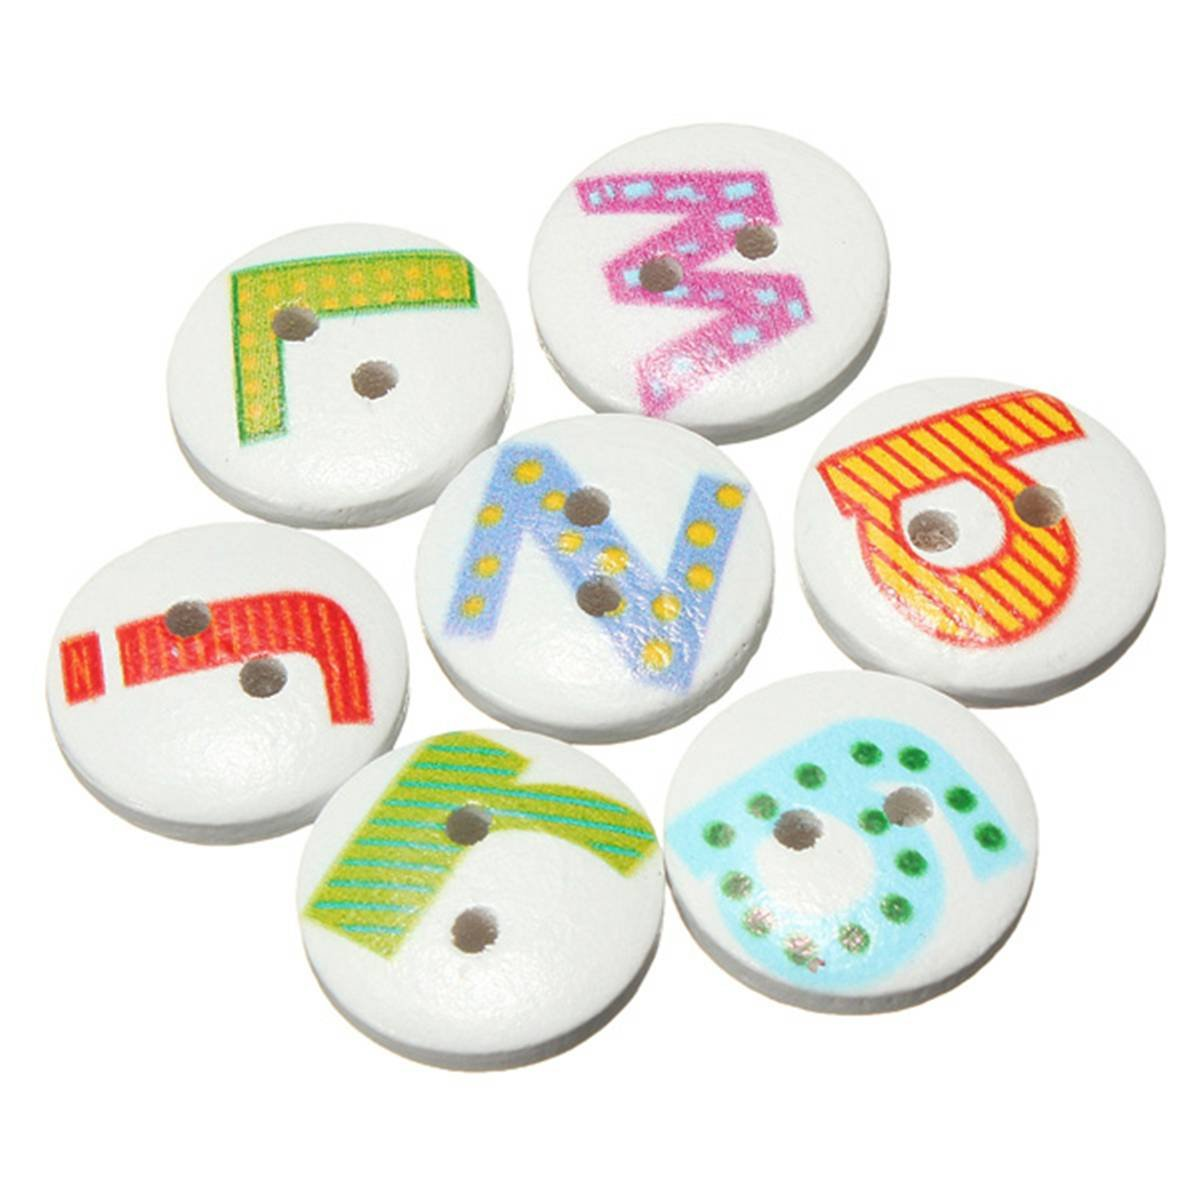 Boutique 100Pcs Mixed Painted Letter Alphabet Wooden Sewing Button Scrapbooking